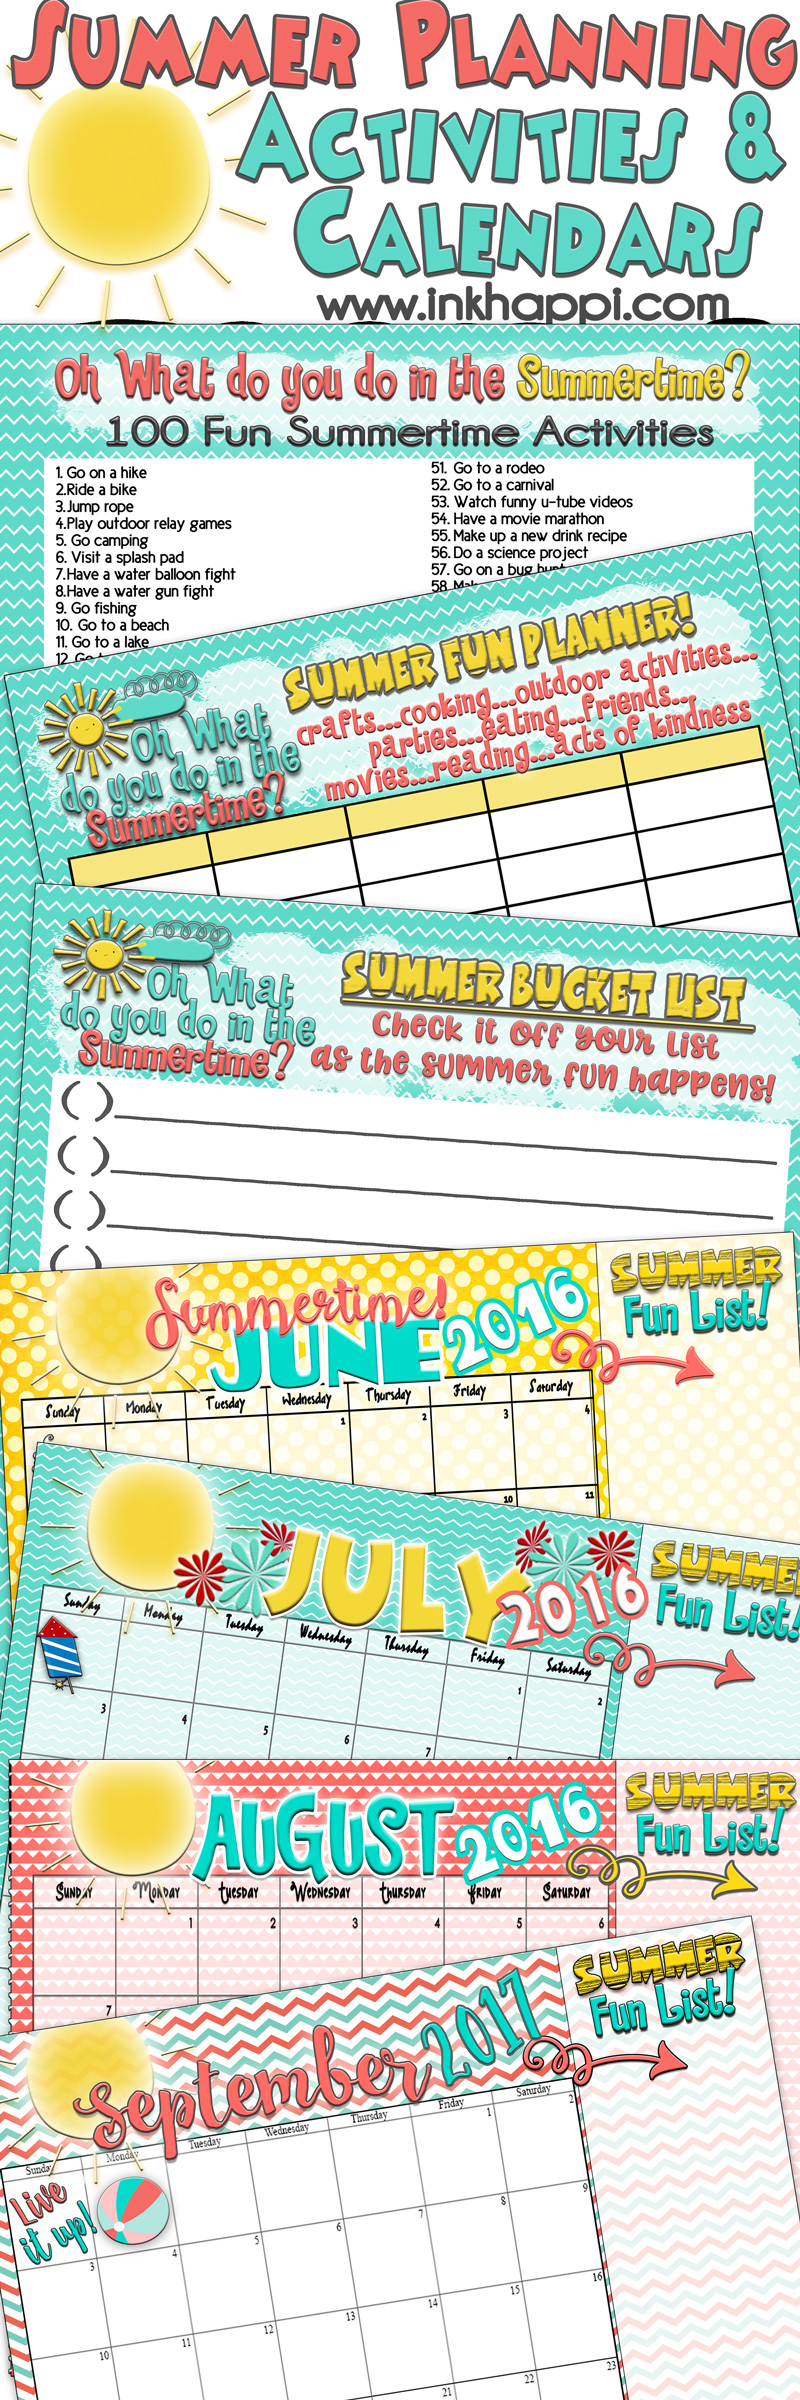 Summer bucket list planners and calendars for an unbelievable